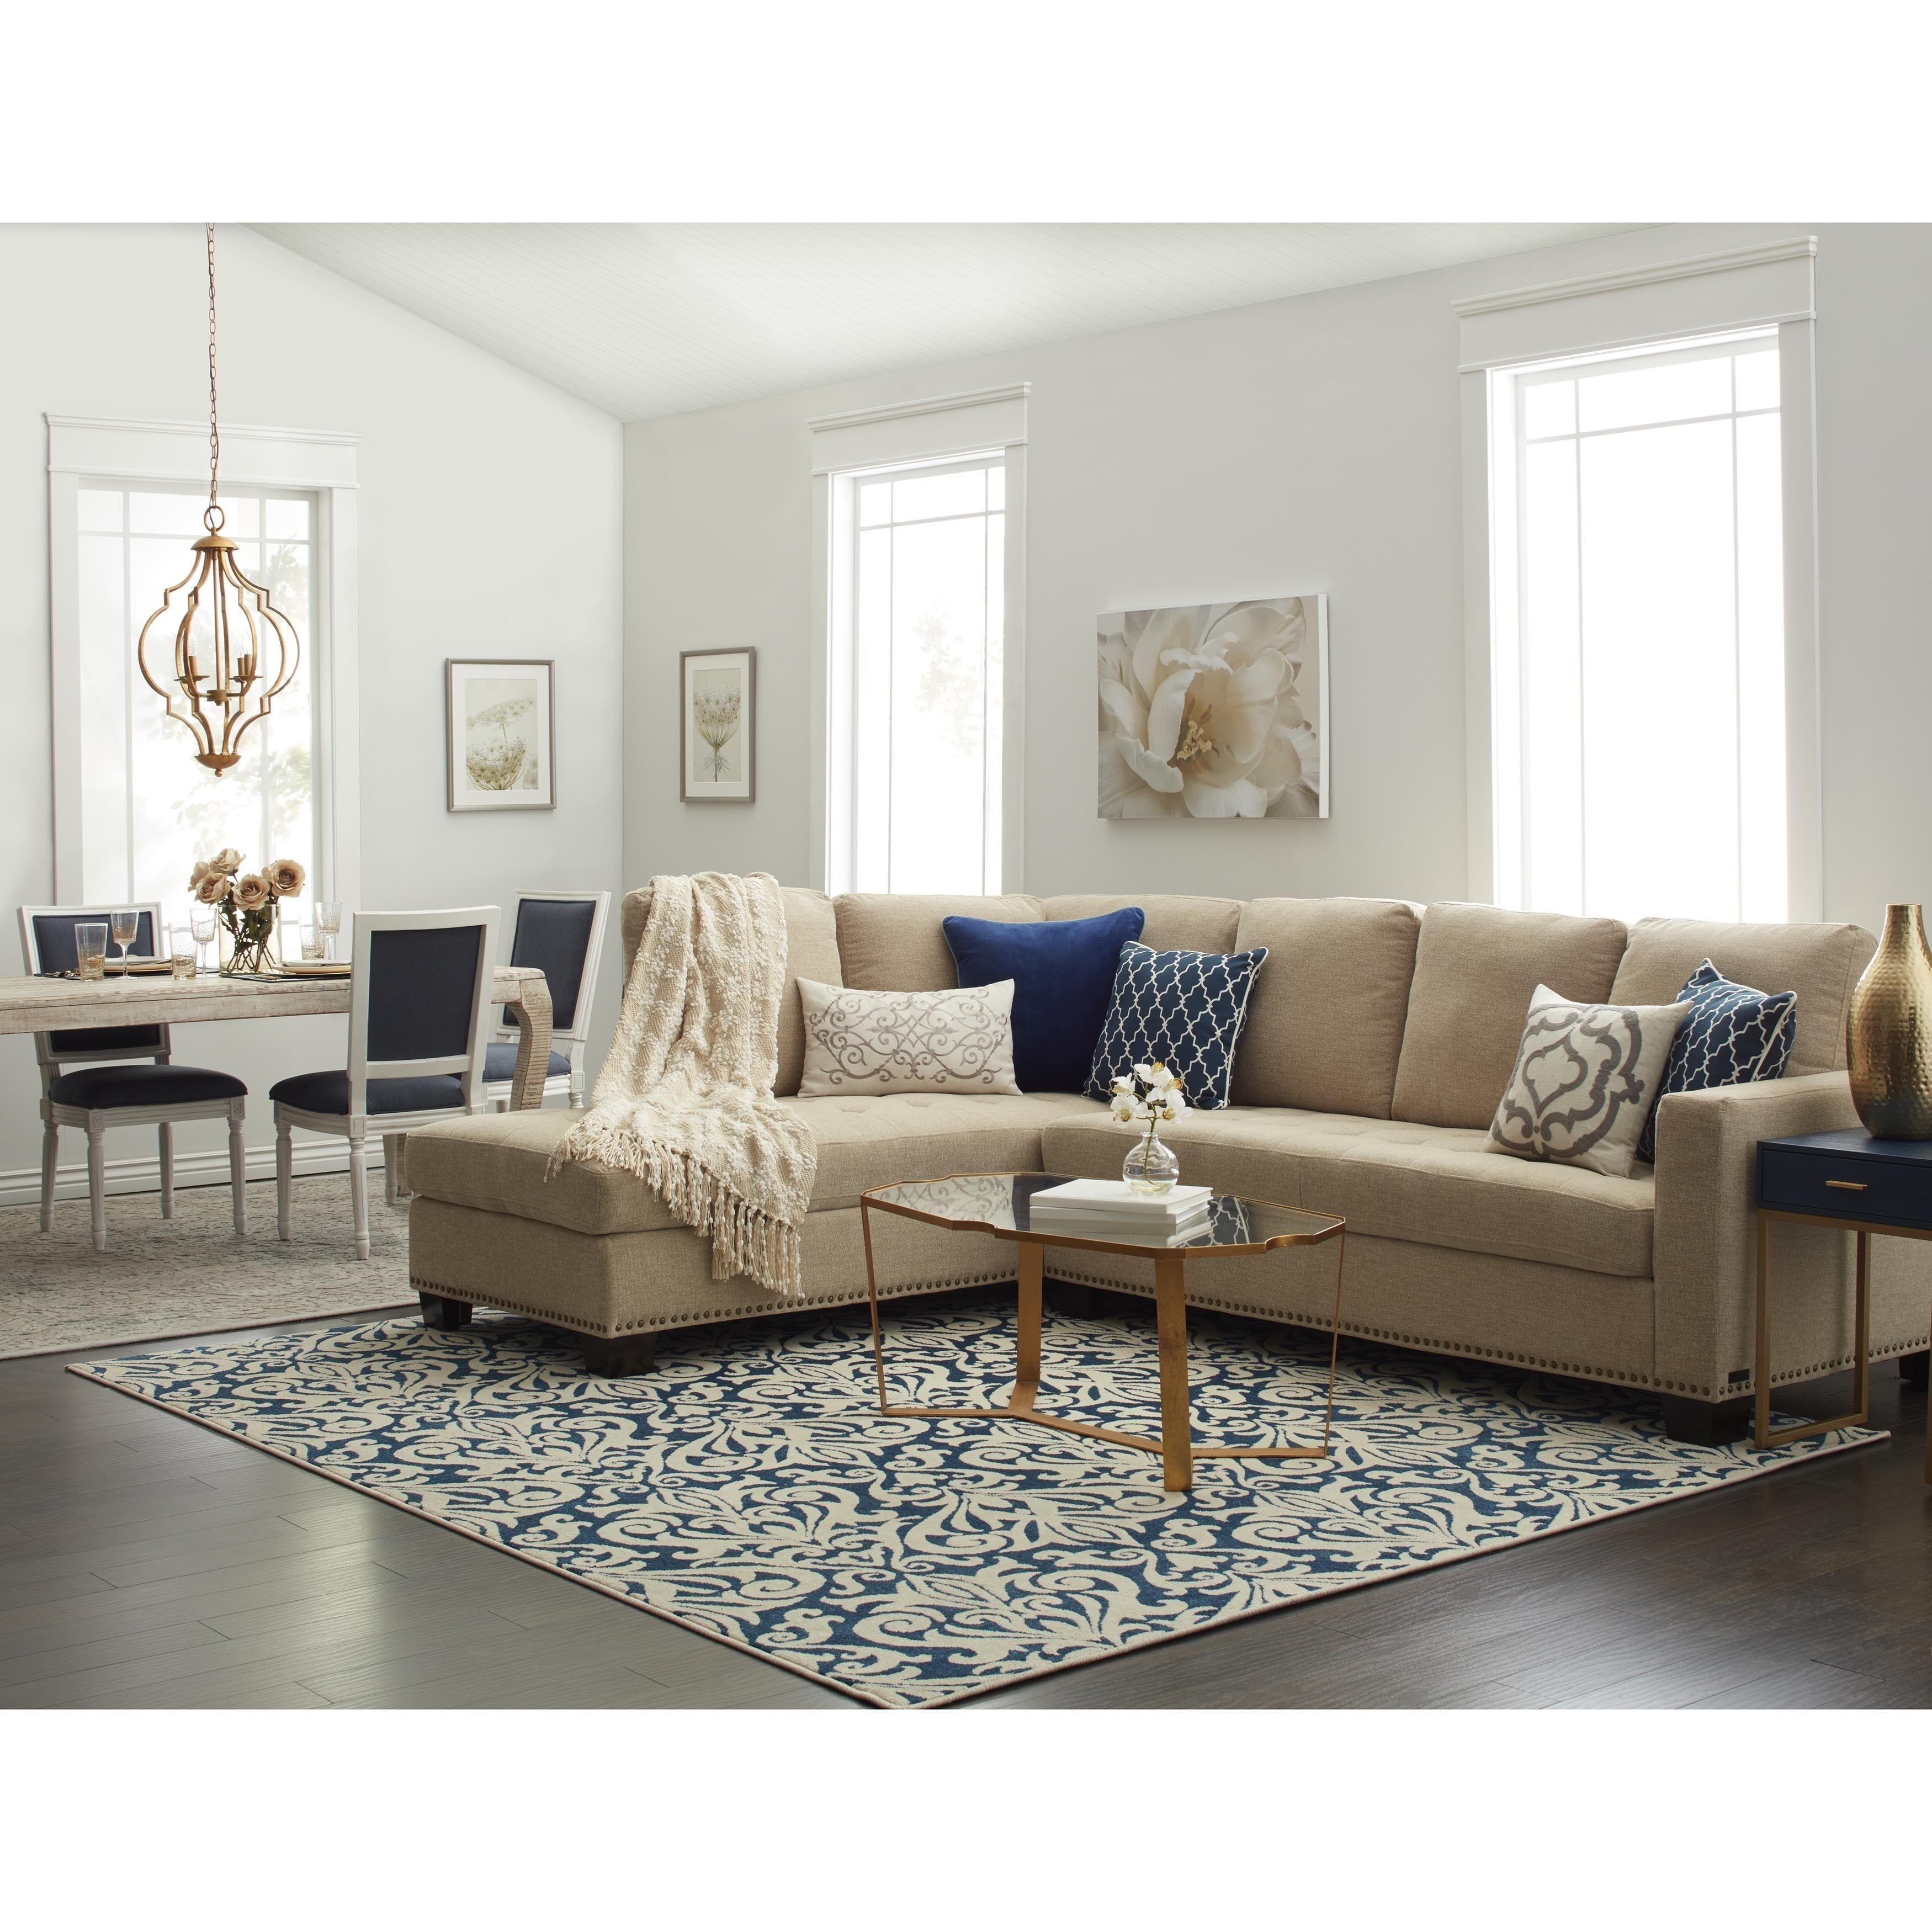 Overstock Sectional Sofas in 2019 | Design Concepts | Beige ...